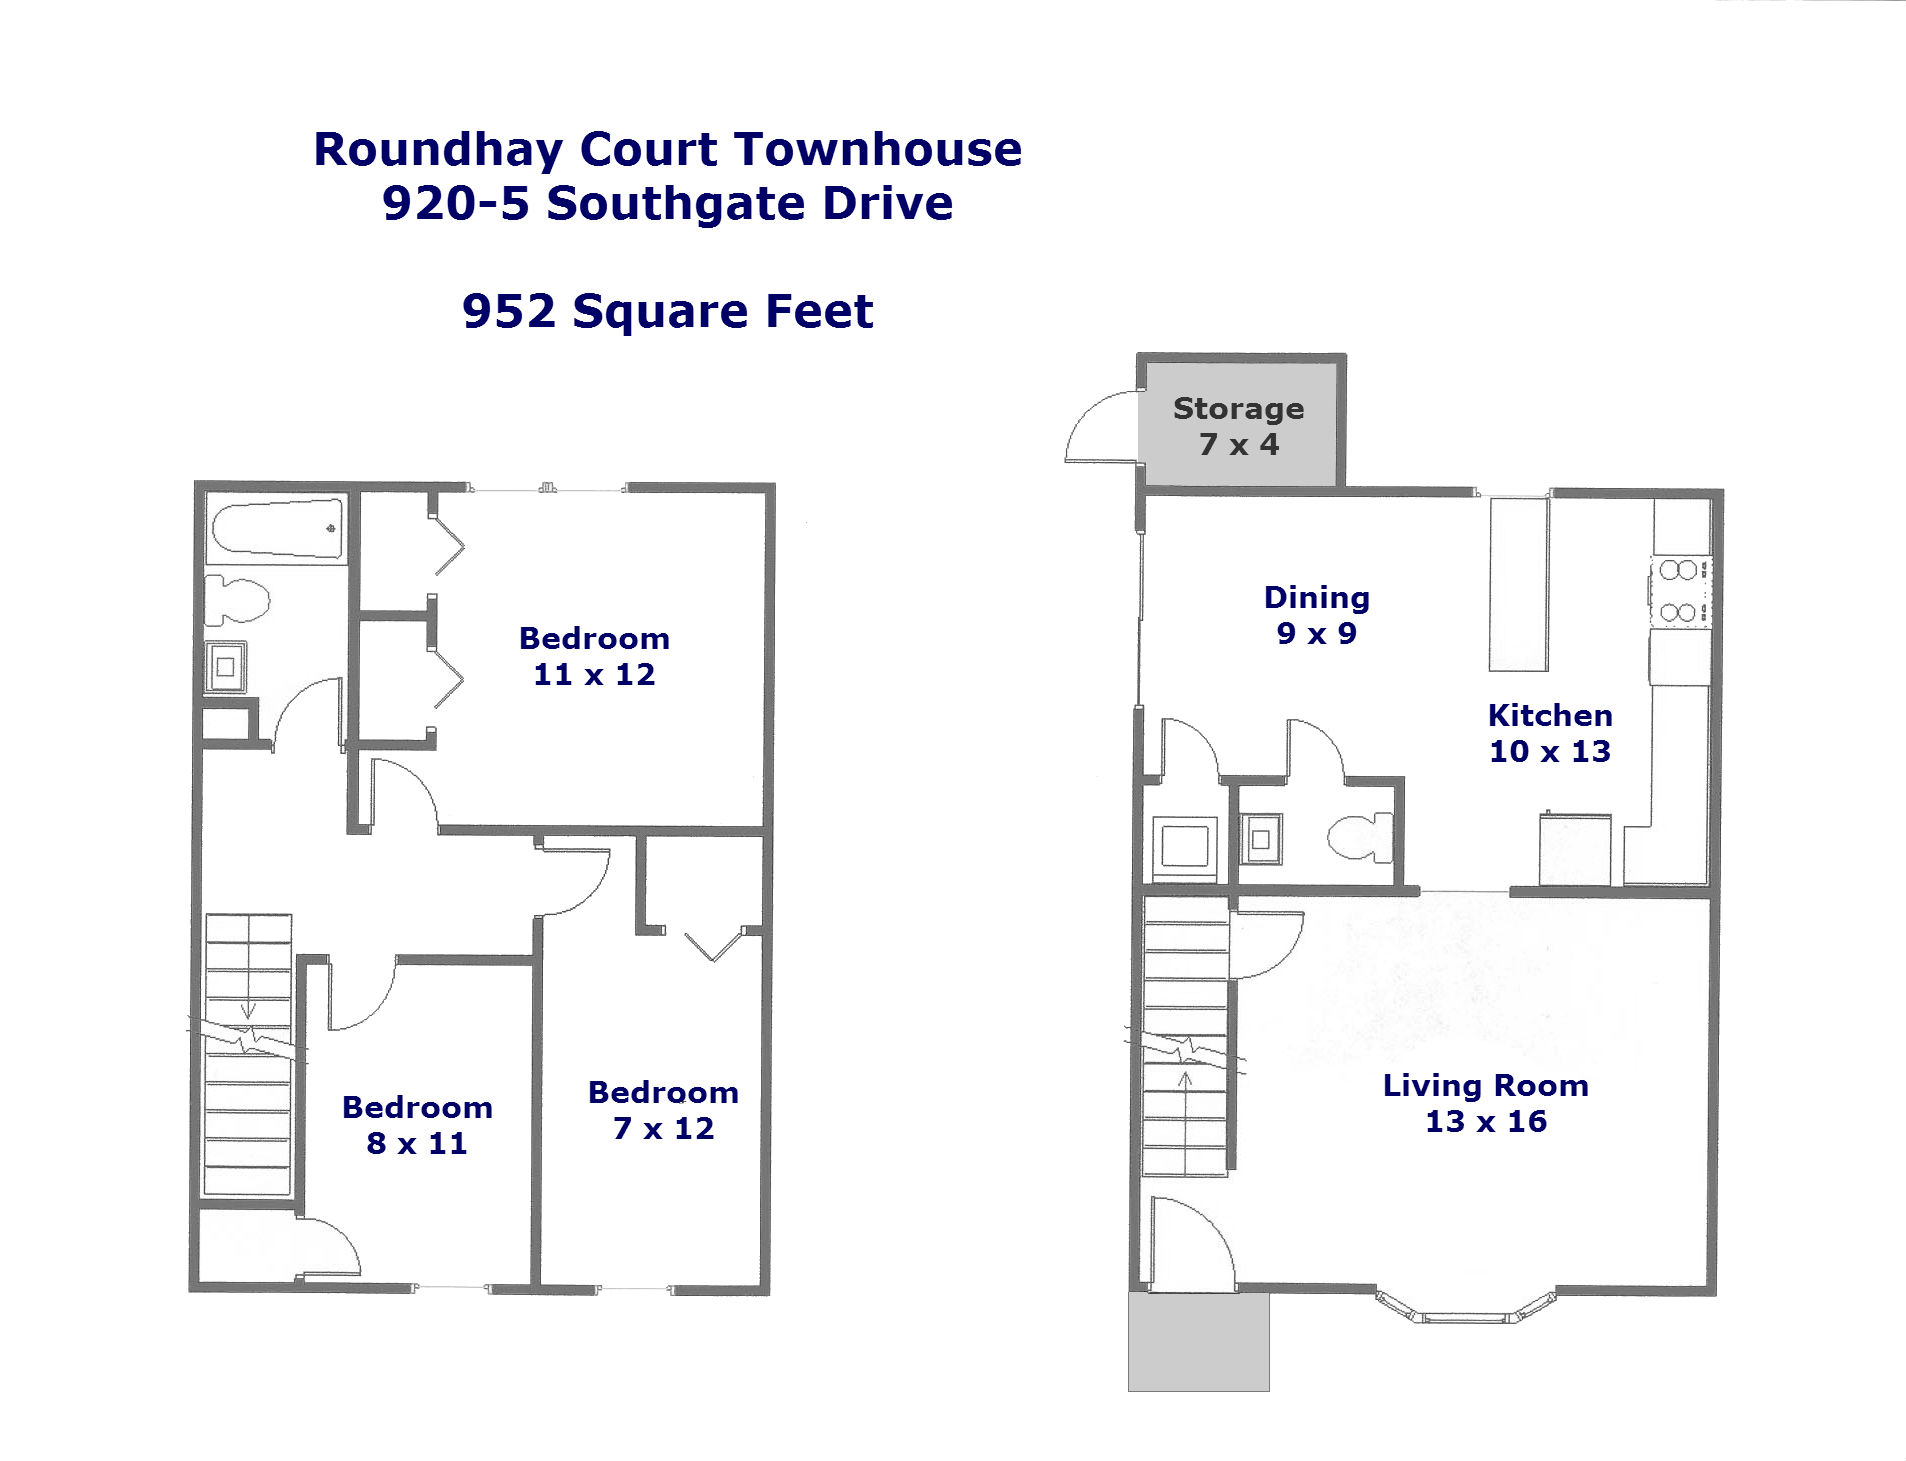 Floor plan for 920-5 Southgate Drive.